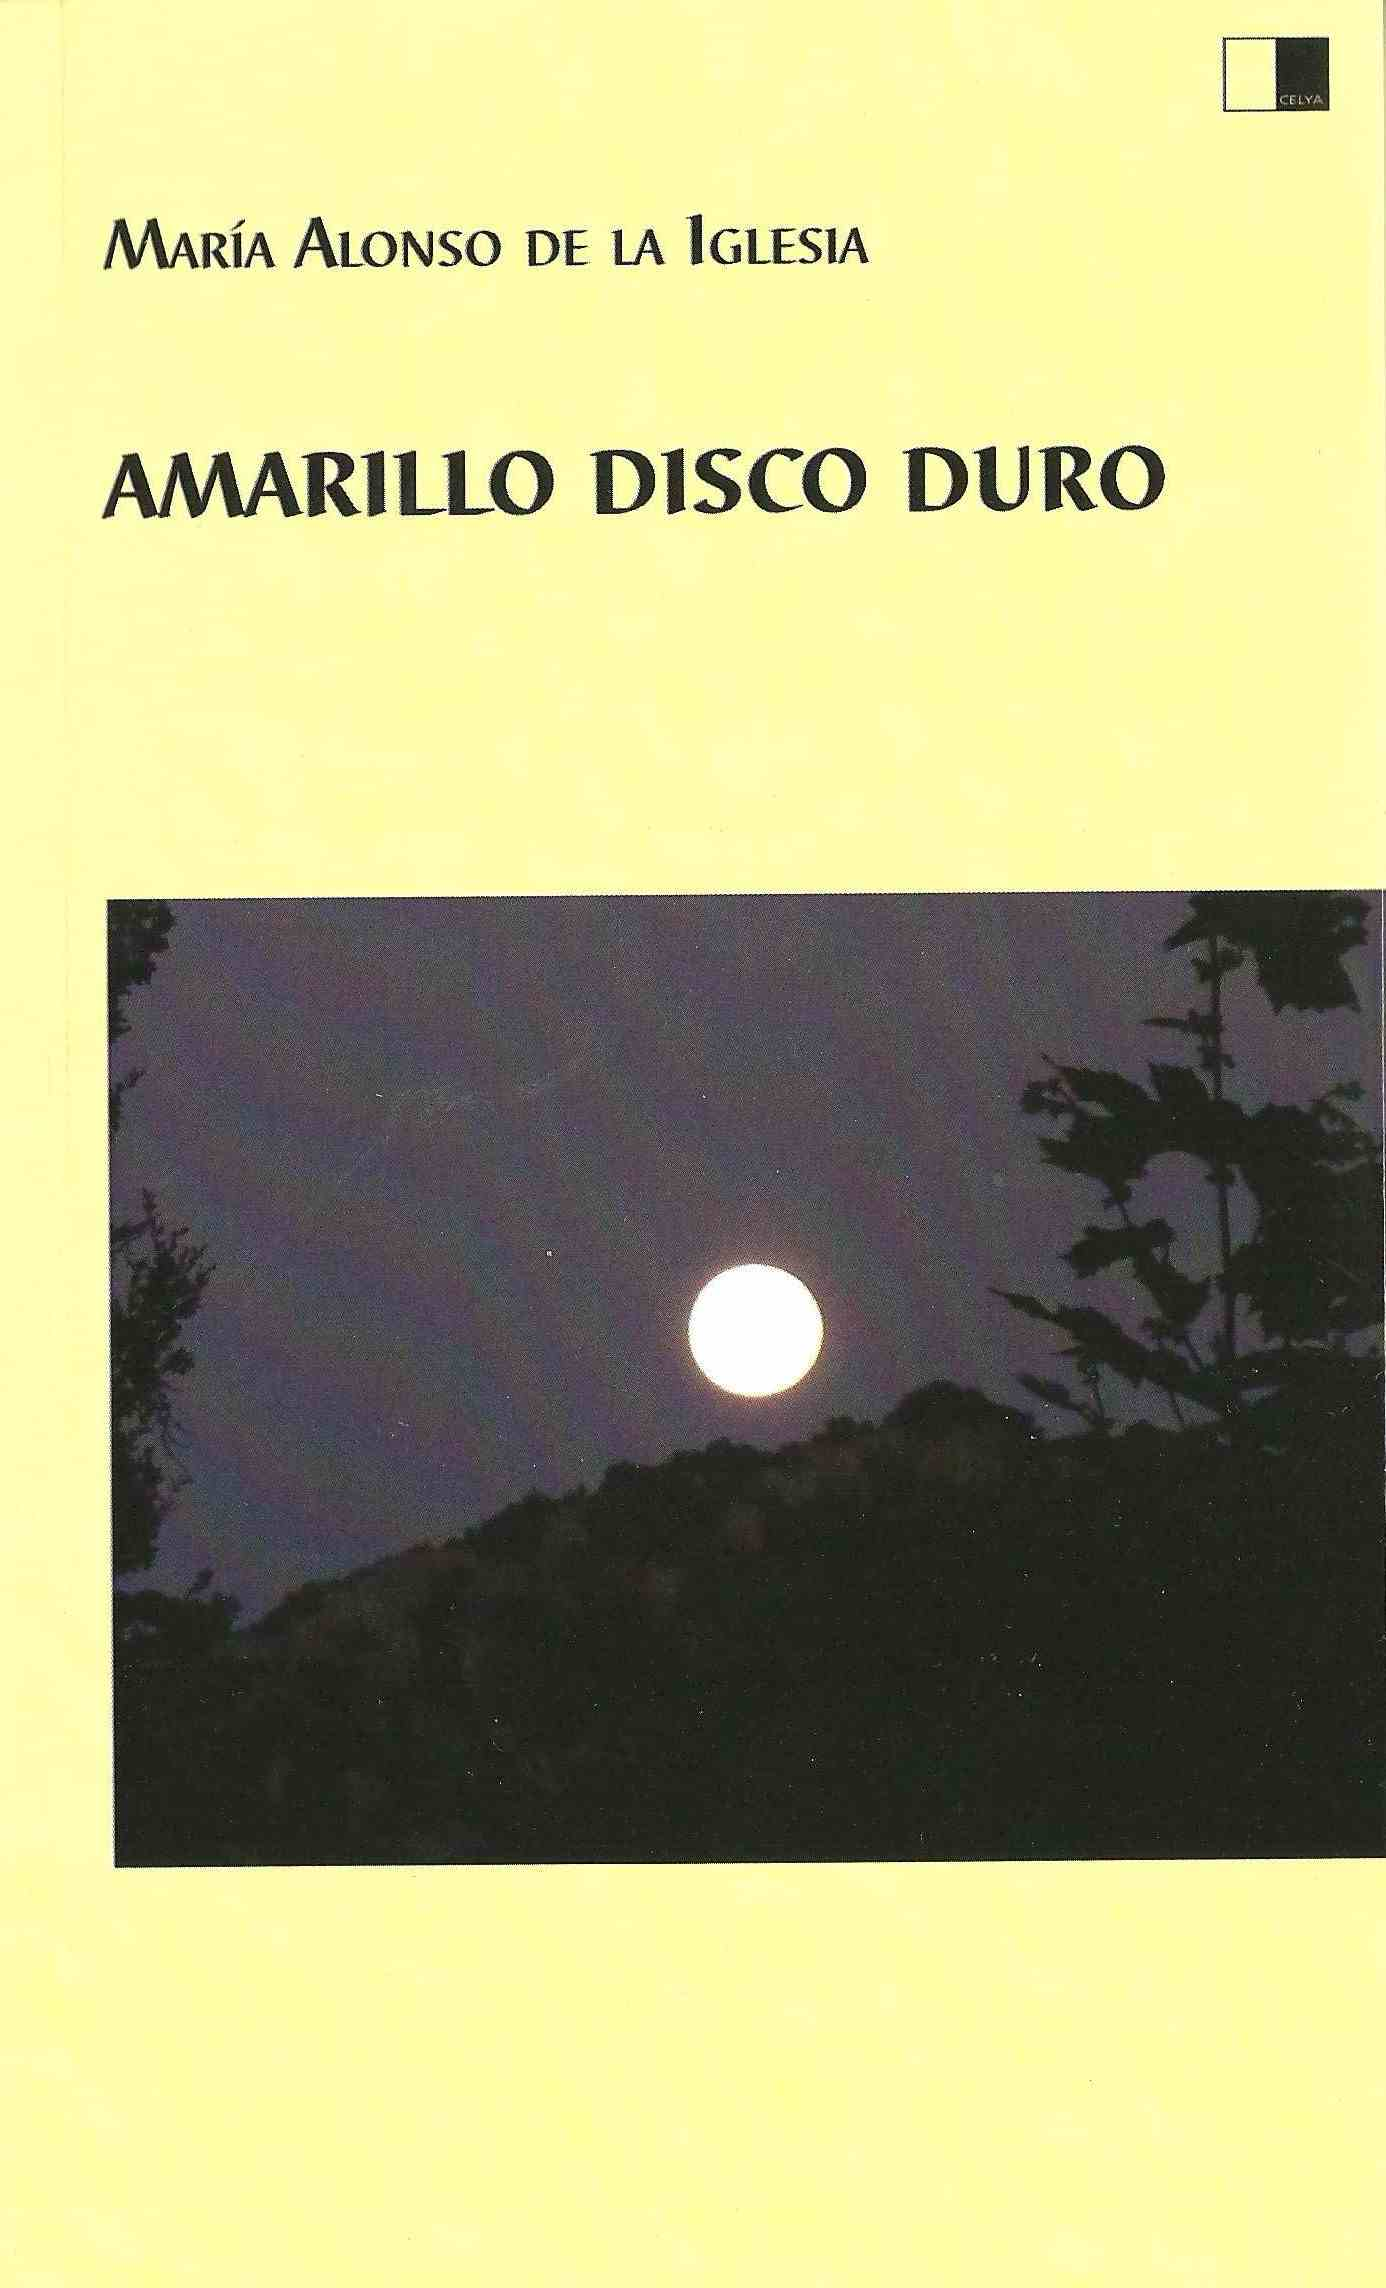 AMARILLO DISCO DURO